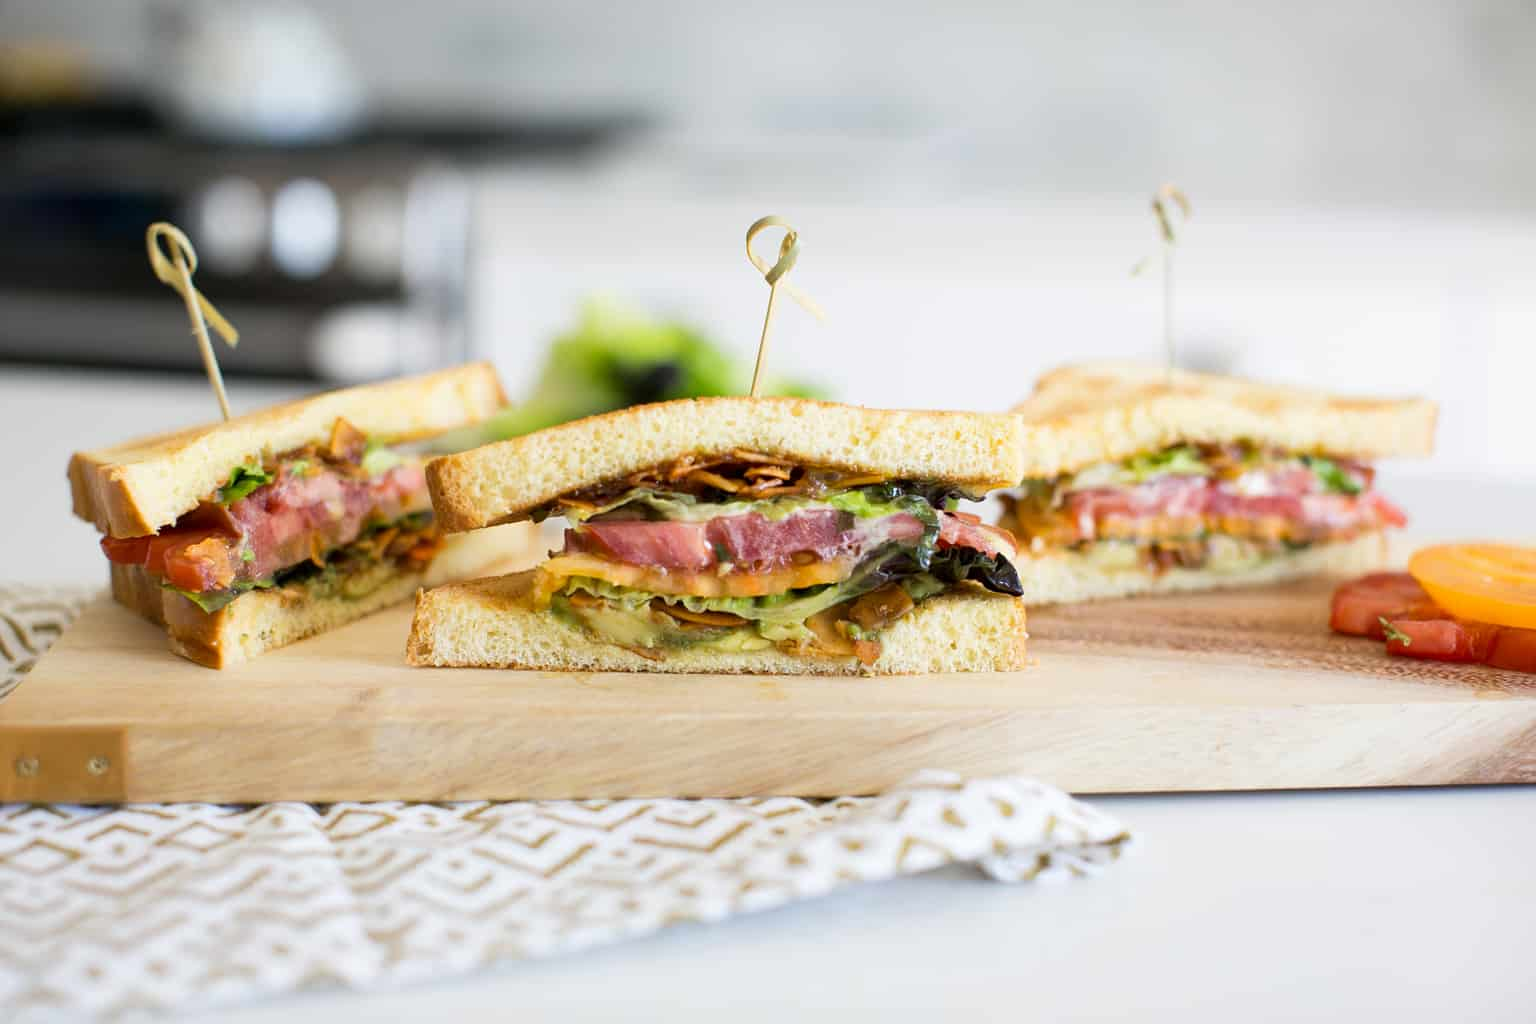 Heirloom Tomato & Coconut Bacon BLT with Basil Aioli